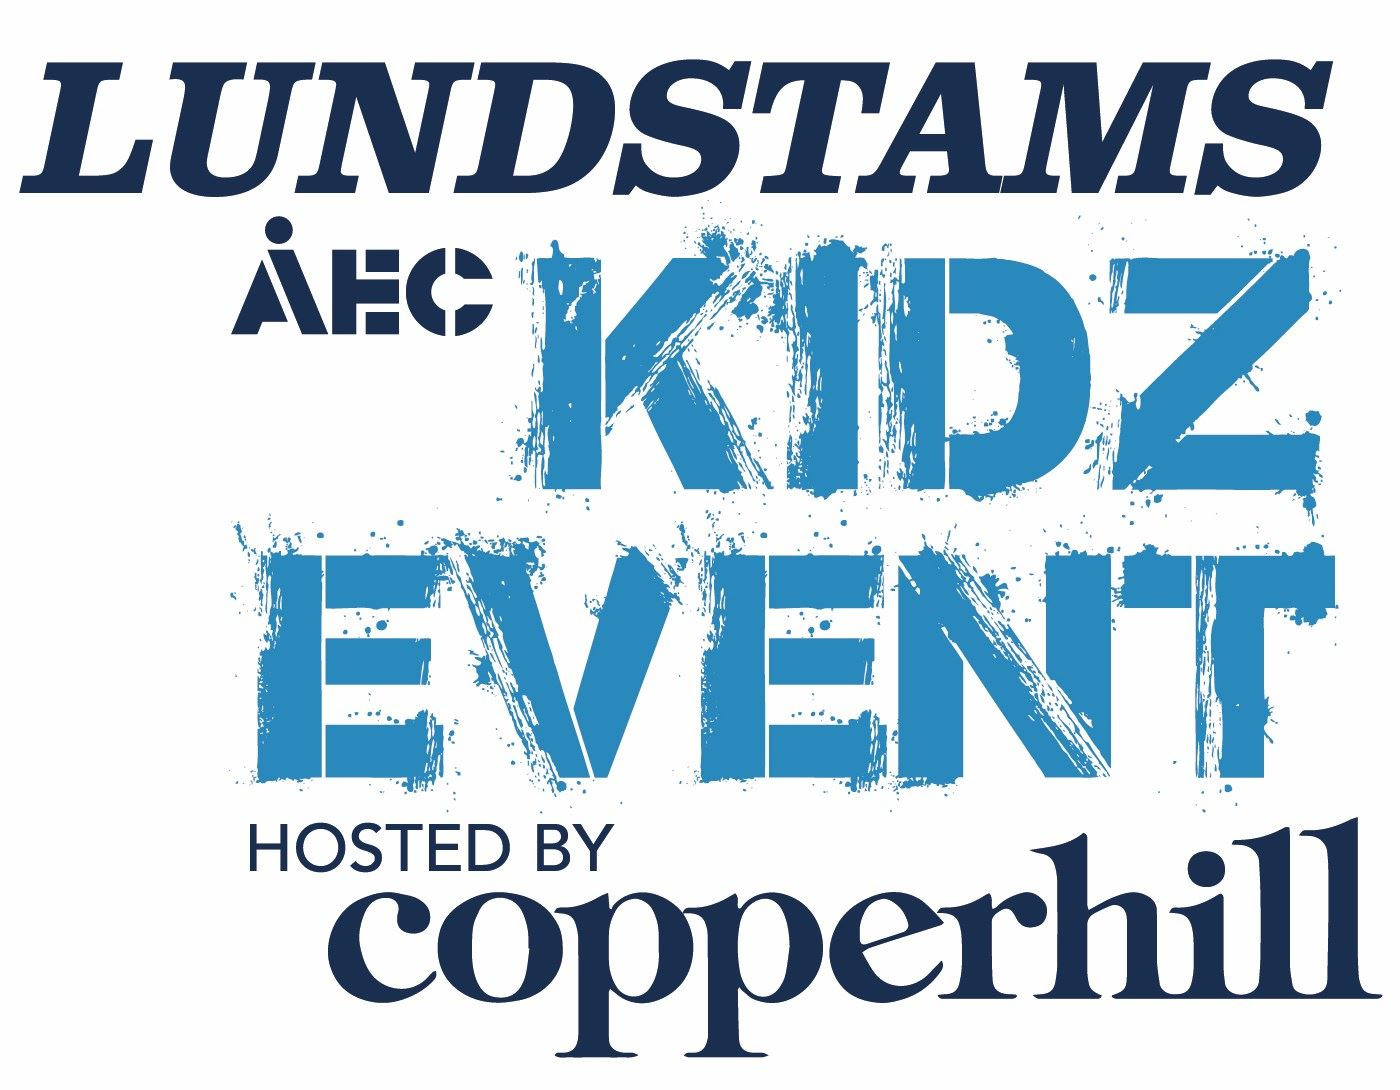 Lundstams ÅEC Kidz, at Copperhill